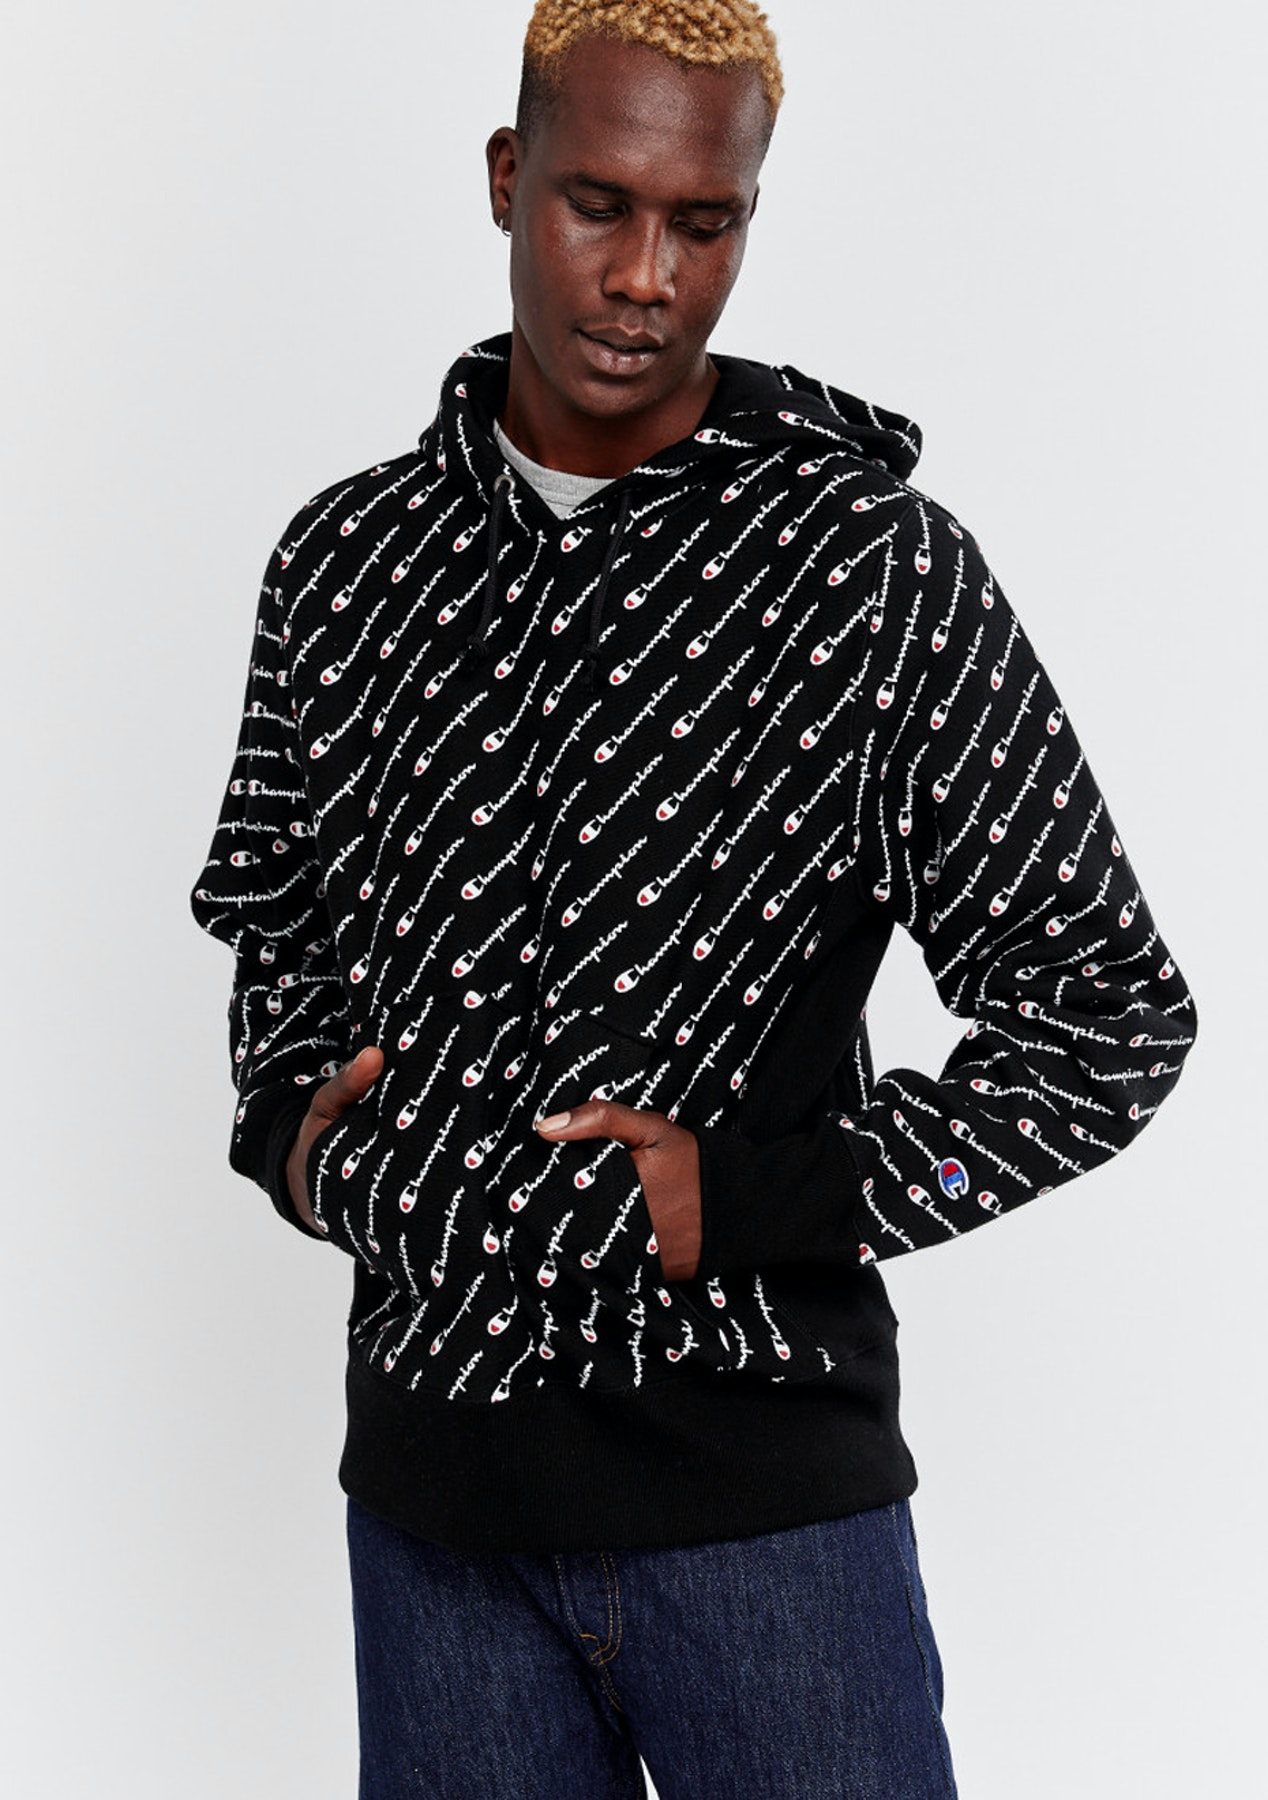 fe752973 Champion - Reverse Weave All-Over Graphic Hoodie - Our Biggest Ever Champion  Sale! - Onceit